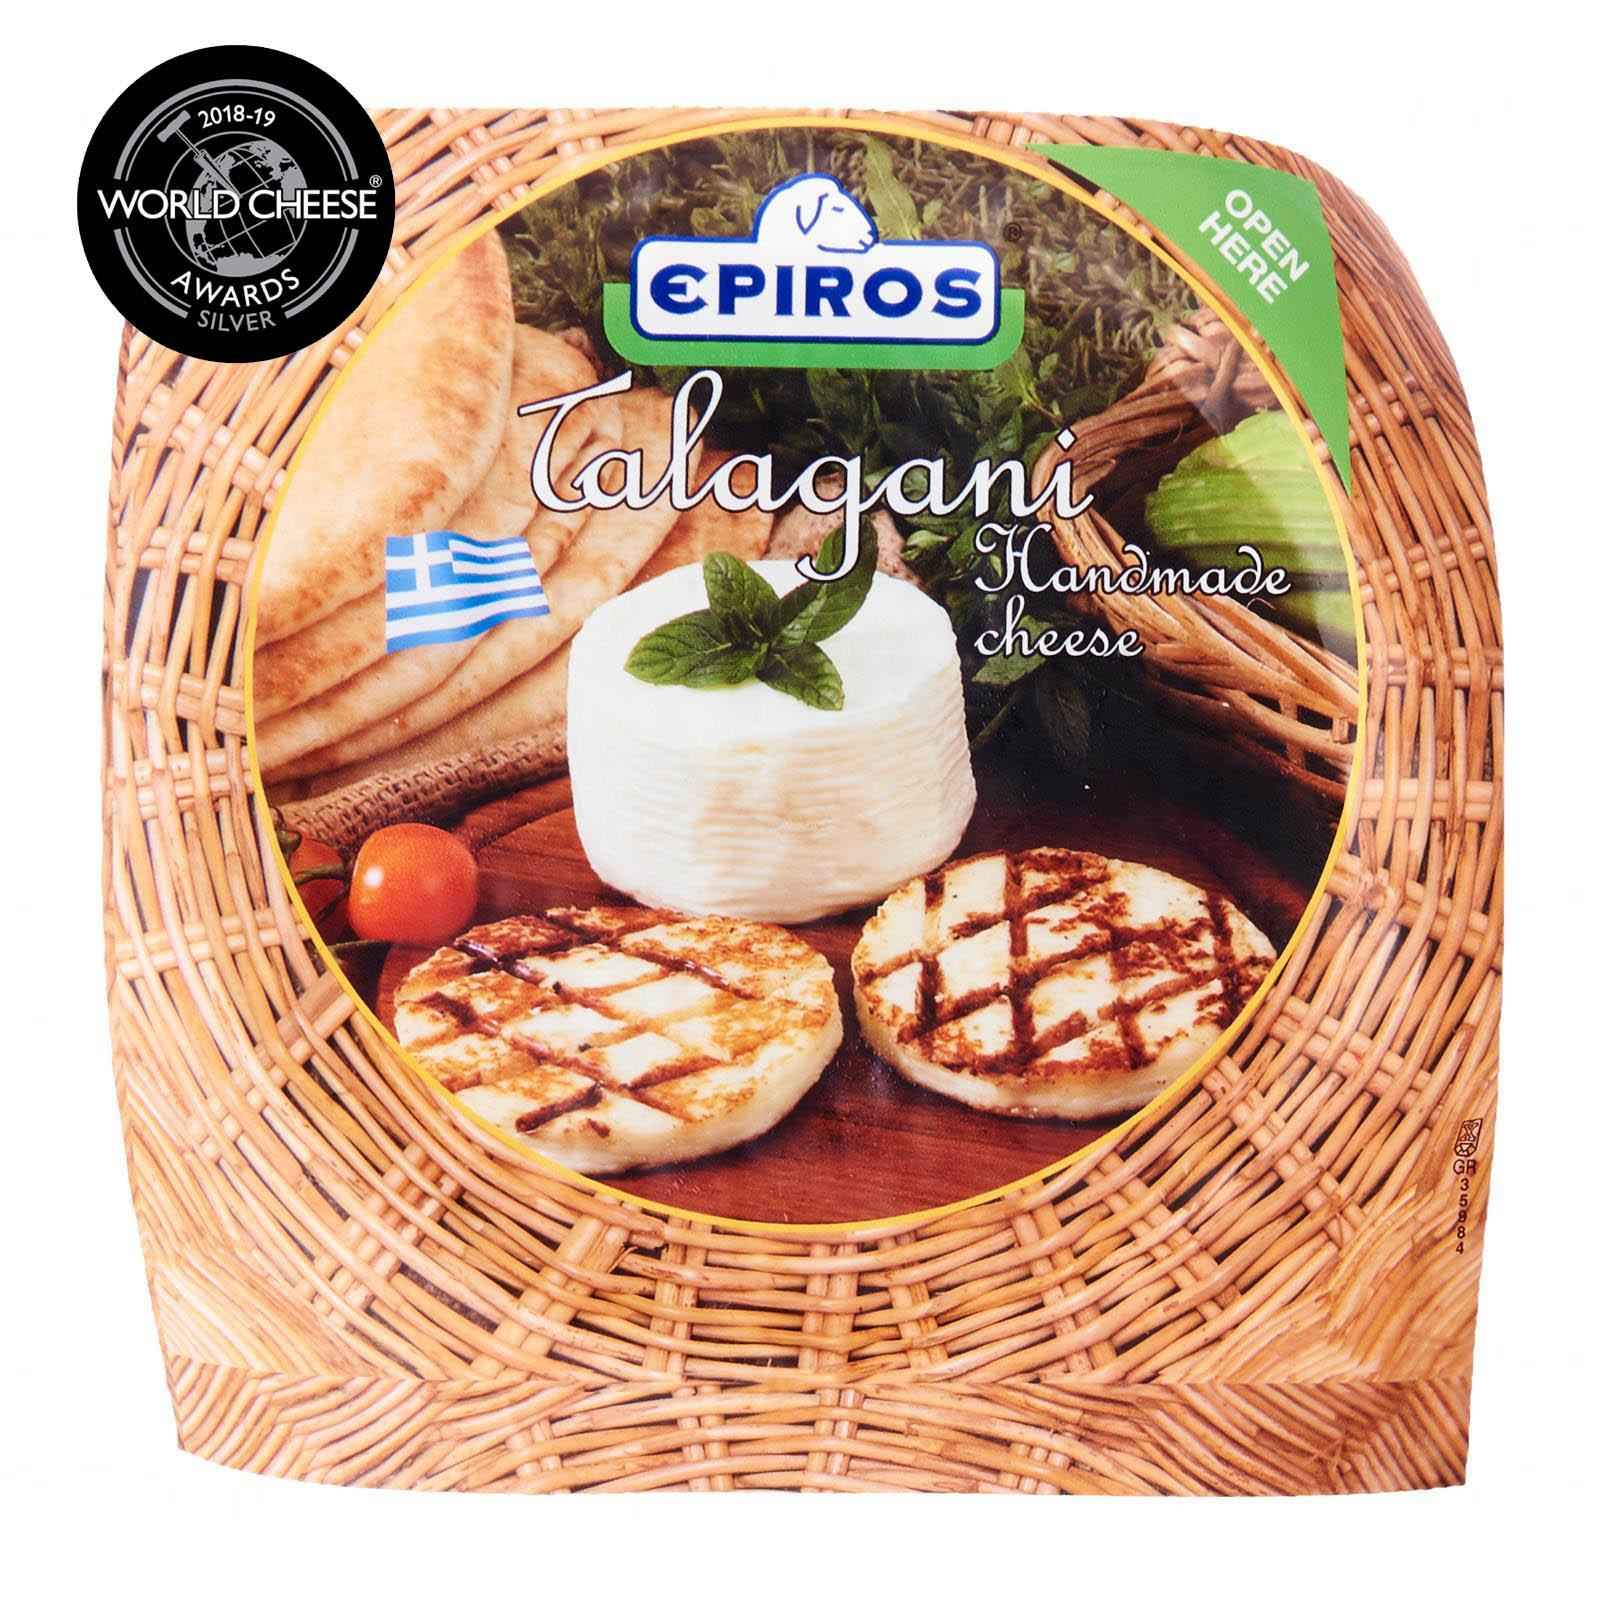 Epiros Talagani Haloumi Type Handmade Grilled Greek Cheese x 2 slices - By Agora Products